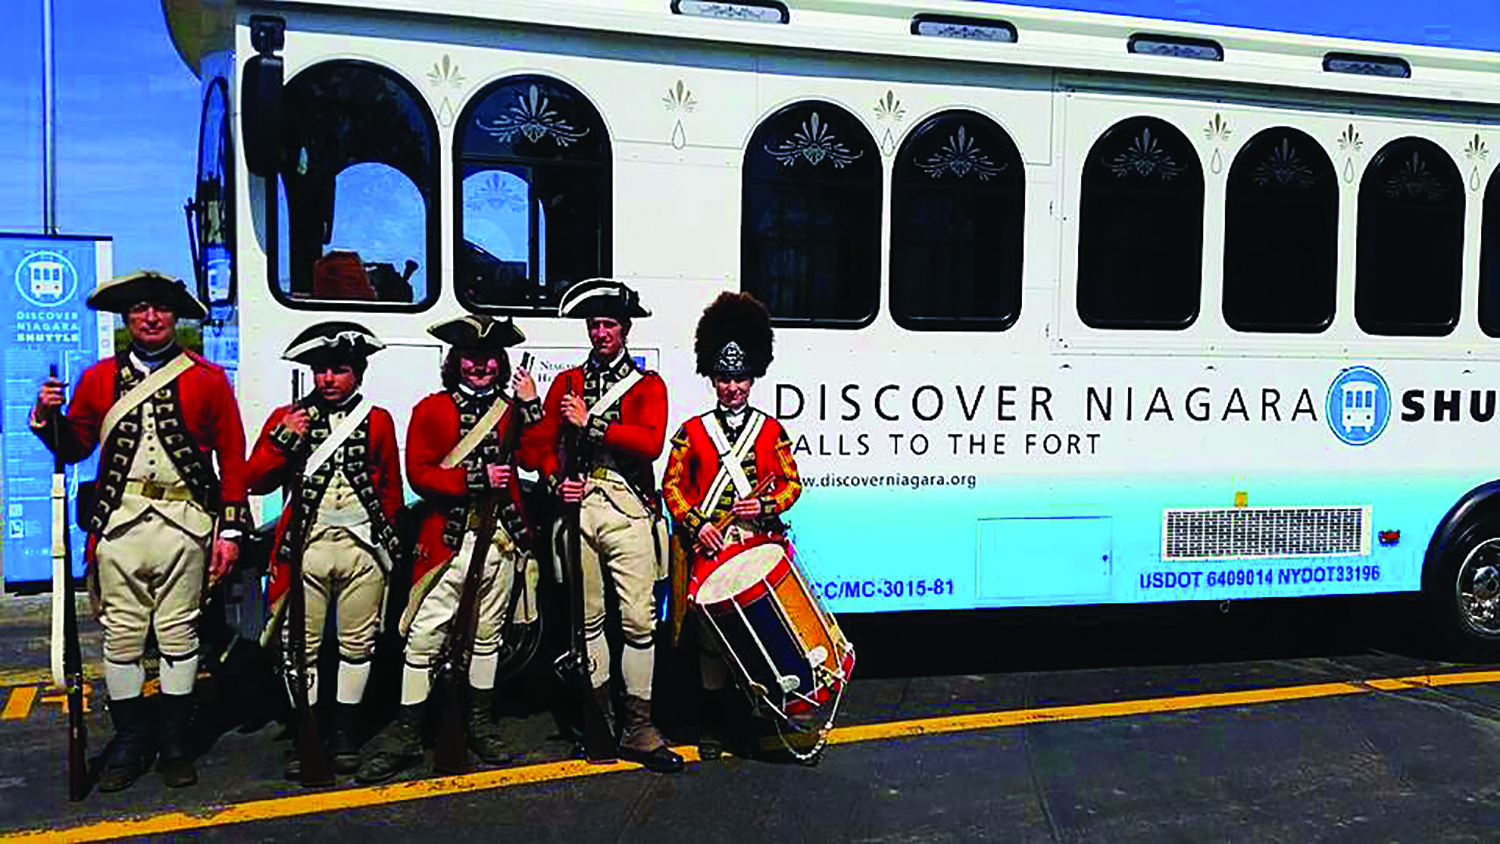 """At a more than $28 subsidy per passenger, these Redcoats are in no hurry to """"Brexit"""" the Discovery shuttle!"""